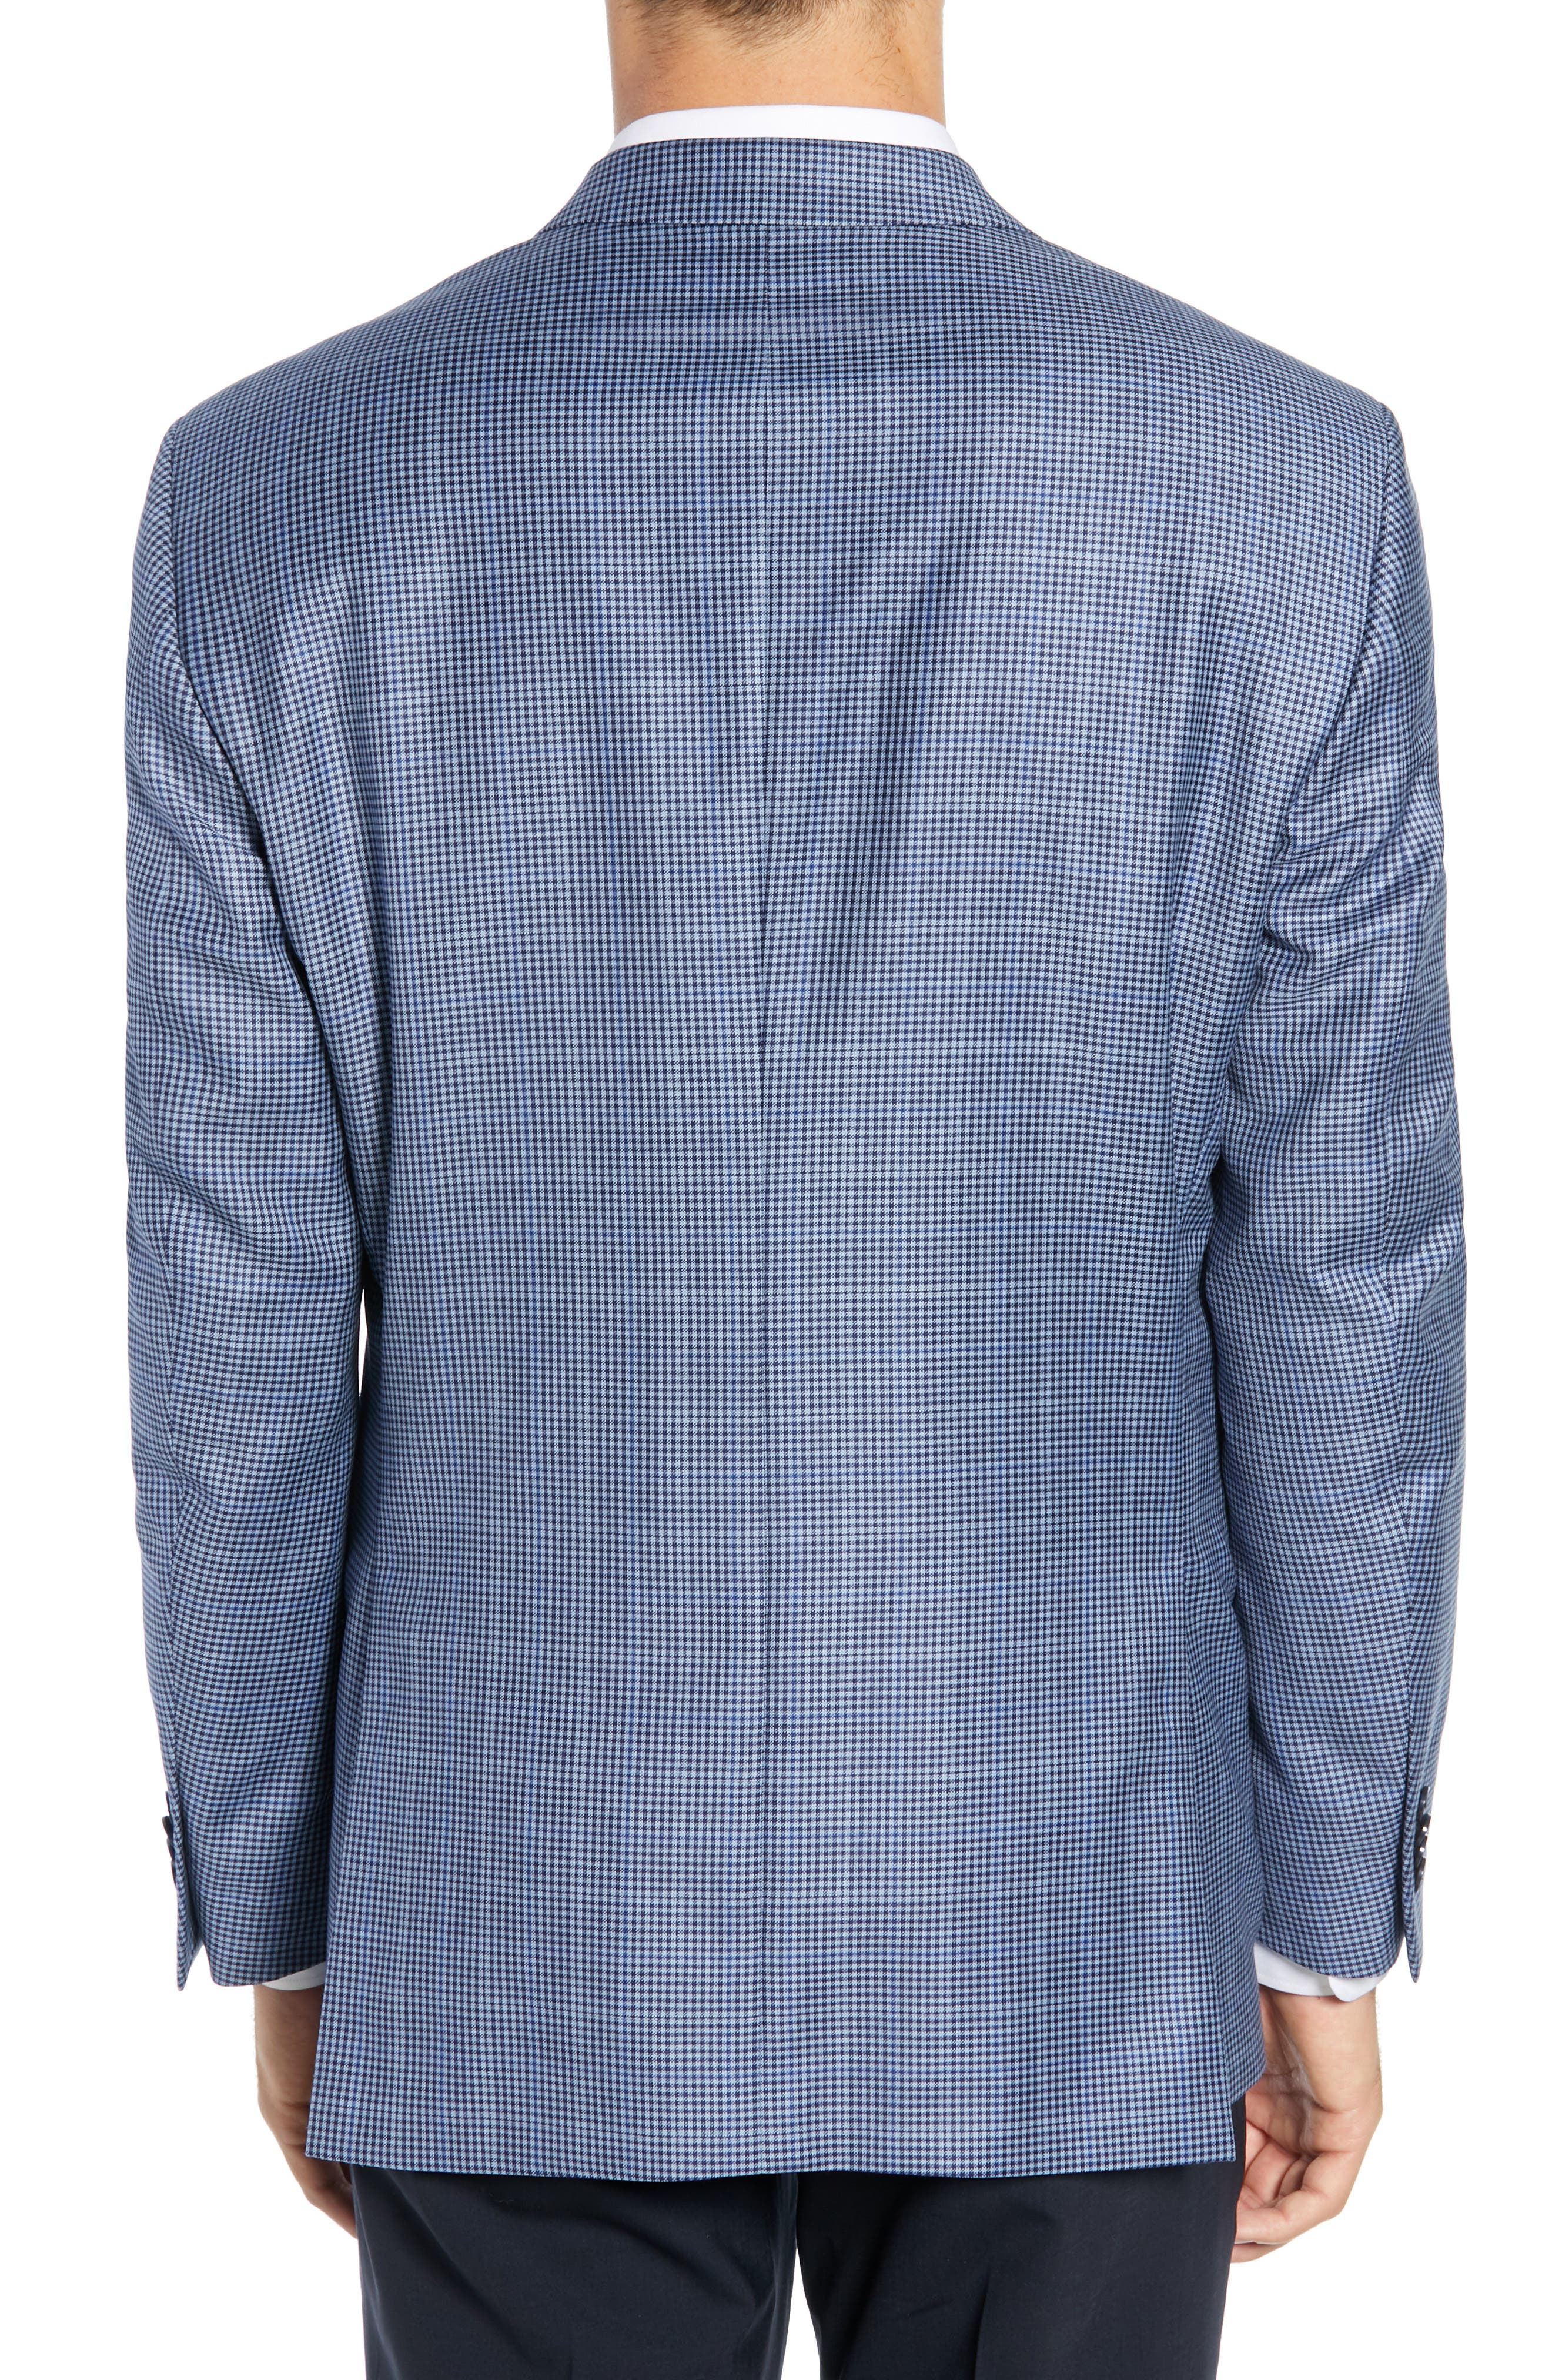 PETER MILLAR, Classic Fit Houndstooth Sport Coat, Alternate thumbnail 2, color, LIGHT BLUE